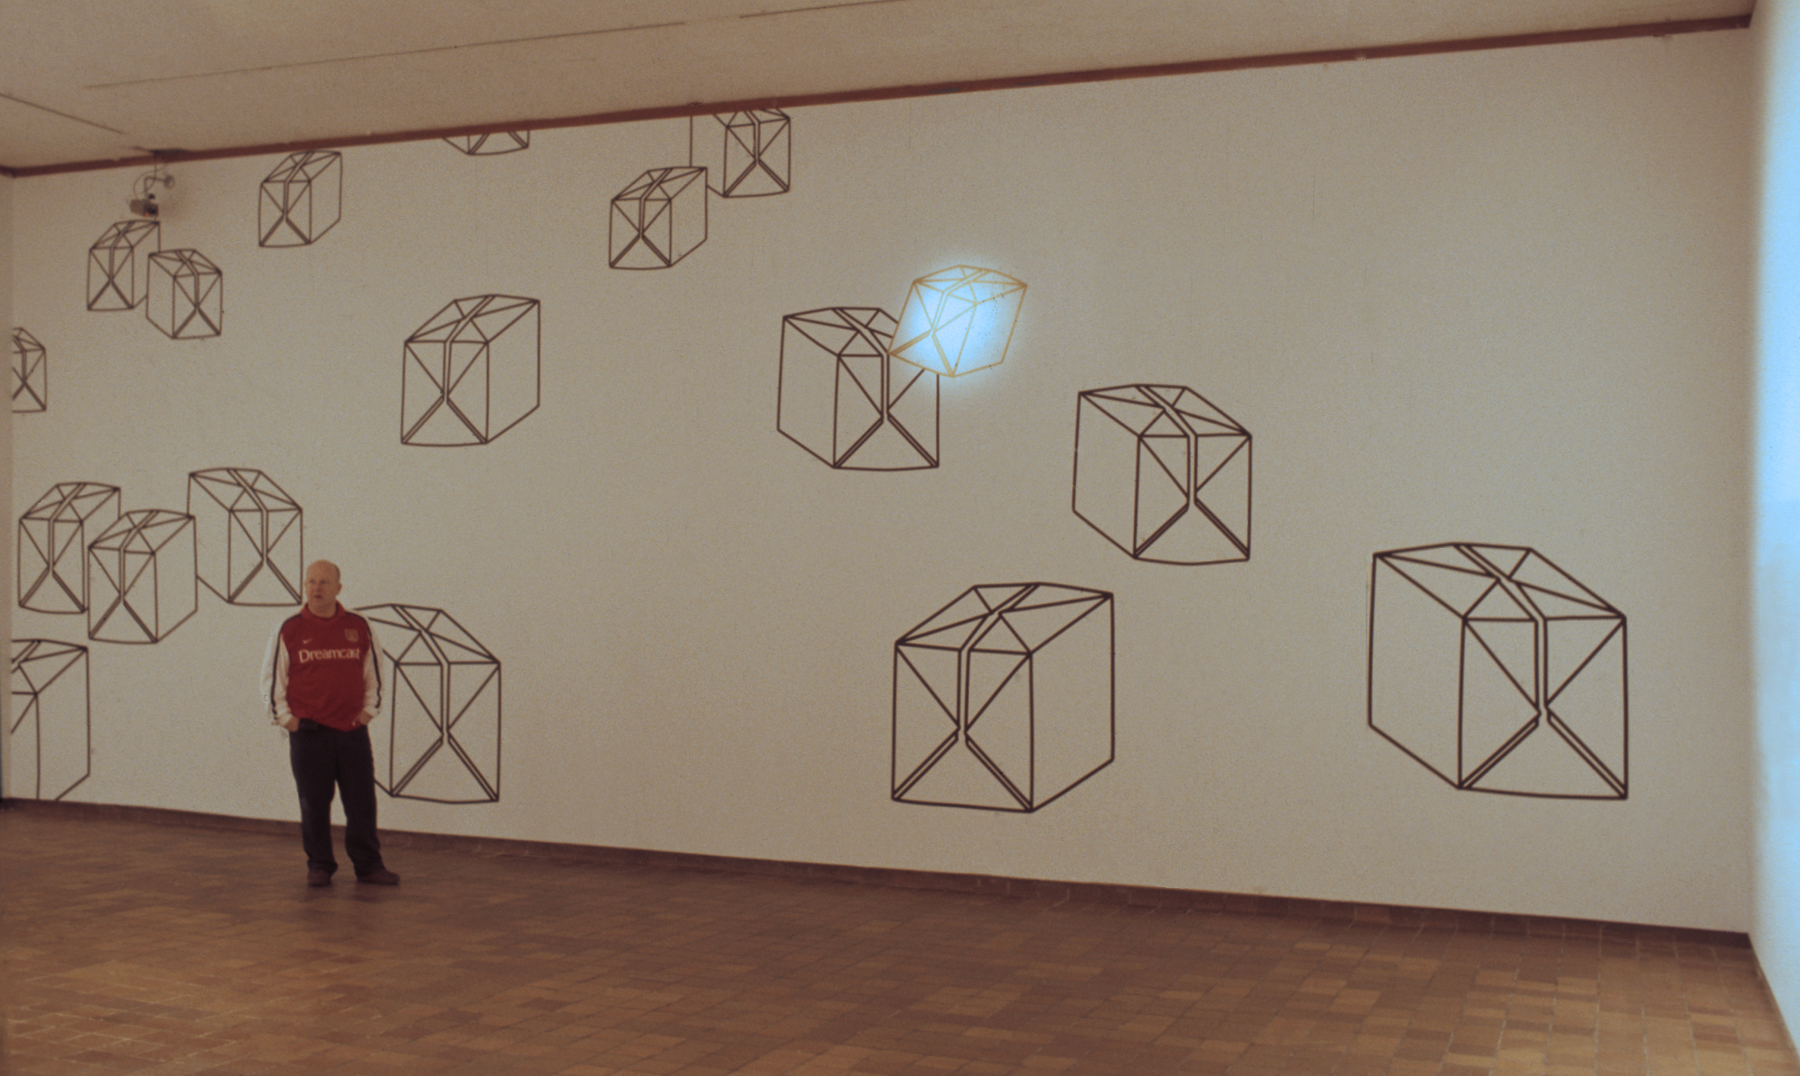 """Draw , 2004. The Edmonton Art Gallery, Edmonton, Alberta, Canada.                96    800x600                 Normal    0                false    false    false       EN-US    JA    X-NONE                                                                                                                                                                                                                                                                                                                                                                                                                                                                                                                                                 /* Style Definitions */ table.MsoNormalTable {mso-style-name:""""Table Normal""""; mso-tstyle-rowband-size:0; mso-tstyle-colband-size:0; mso-style-noshow:yes; mso-style-priority:99; mso-style-parent:""""""""; mso-padding-alt:0in 5.4pt 0in 5.4pt; mso-para-margin:0in; mso-para-margin-bottom:.0001pt; mso-pagination:widow-orphan; font-size:10.0pt; font-family:""""Times New Roman"""";}"""